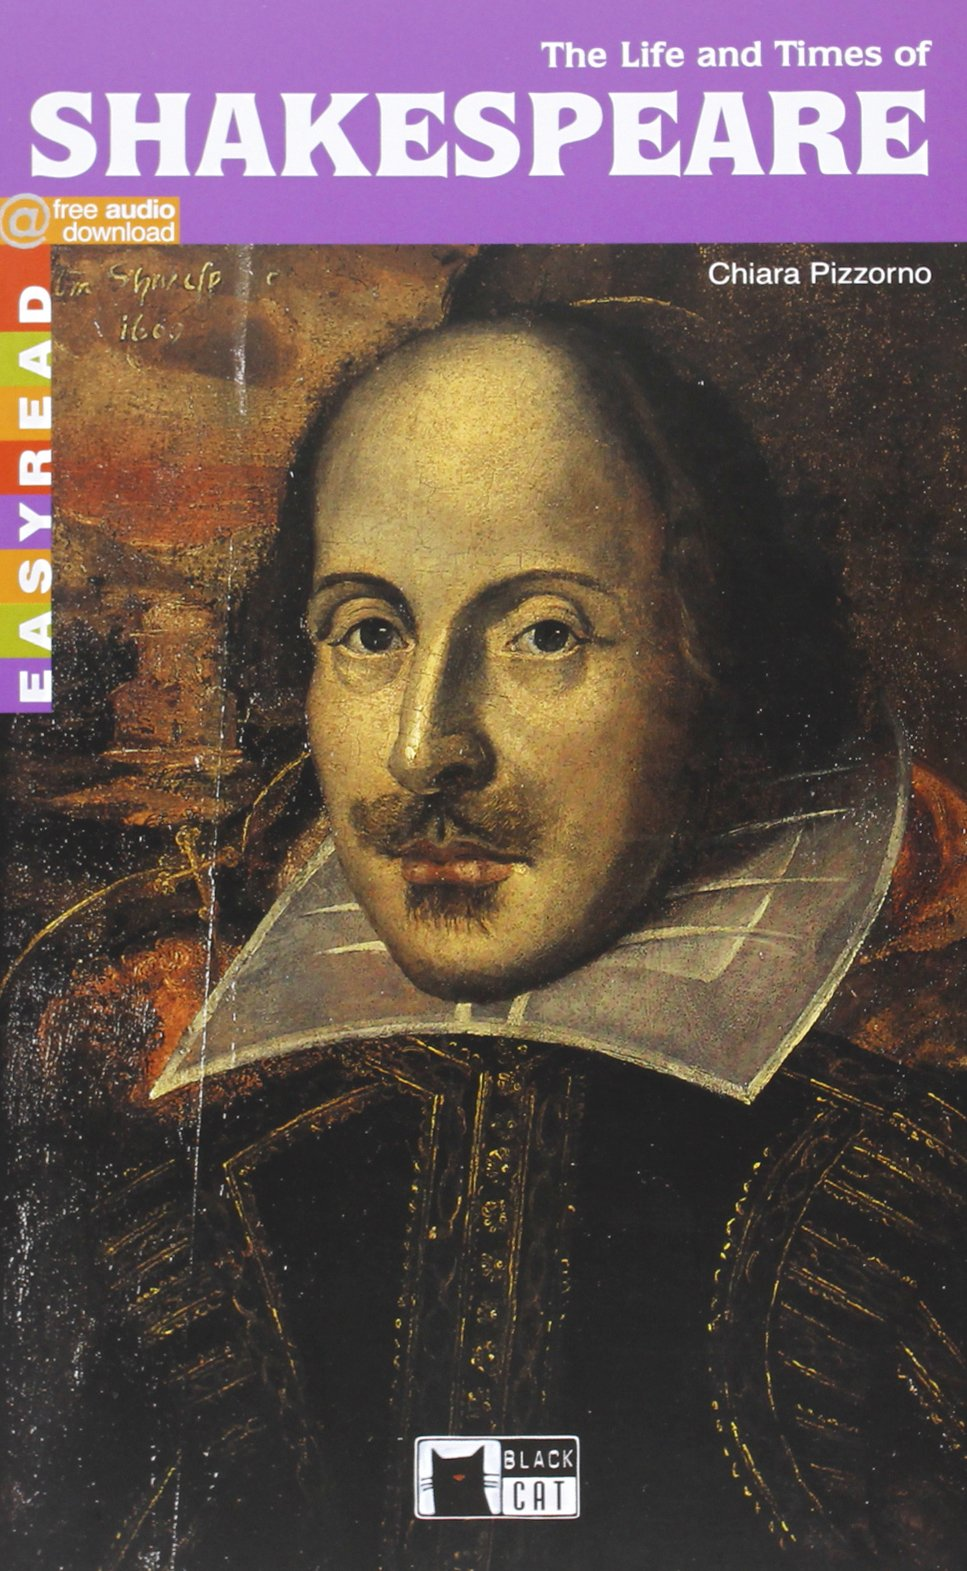 The Life and Times of Shakespeare: Level 2 playwright as enchanter